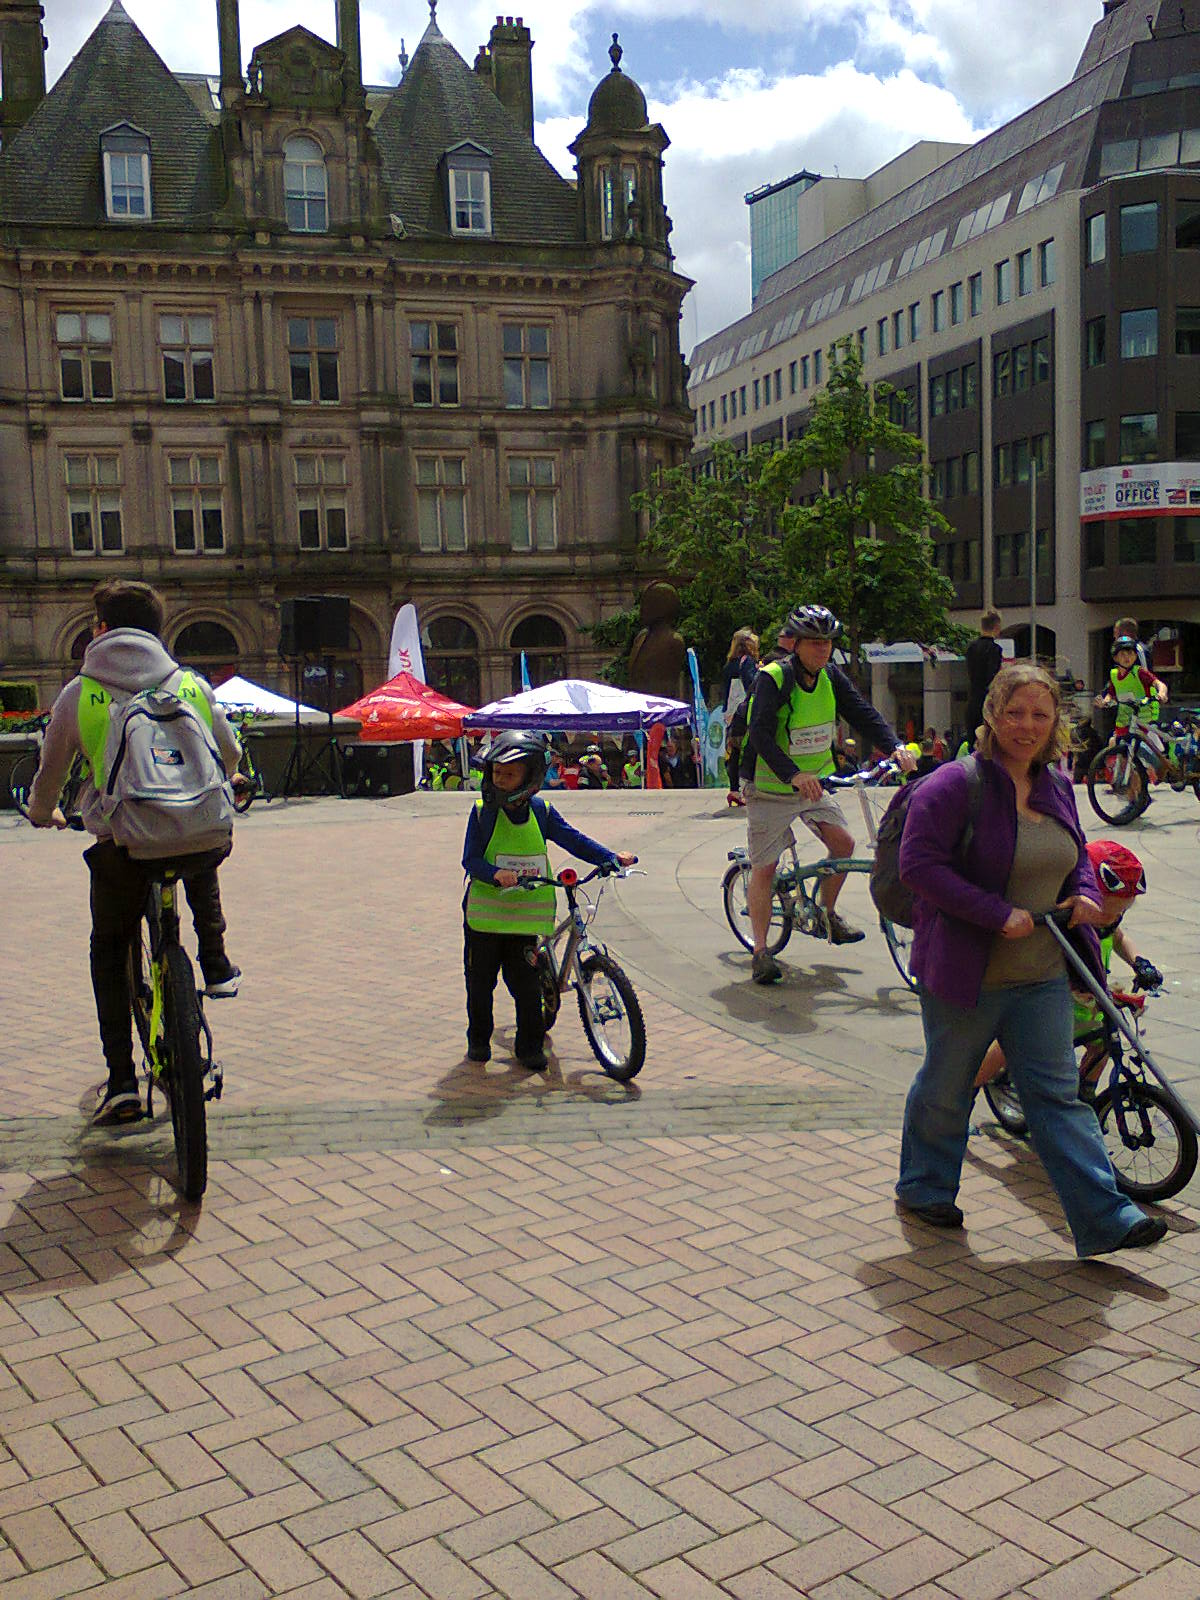 children and adults with bikes